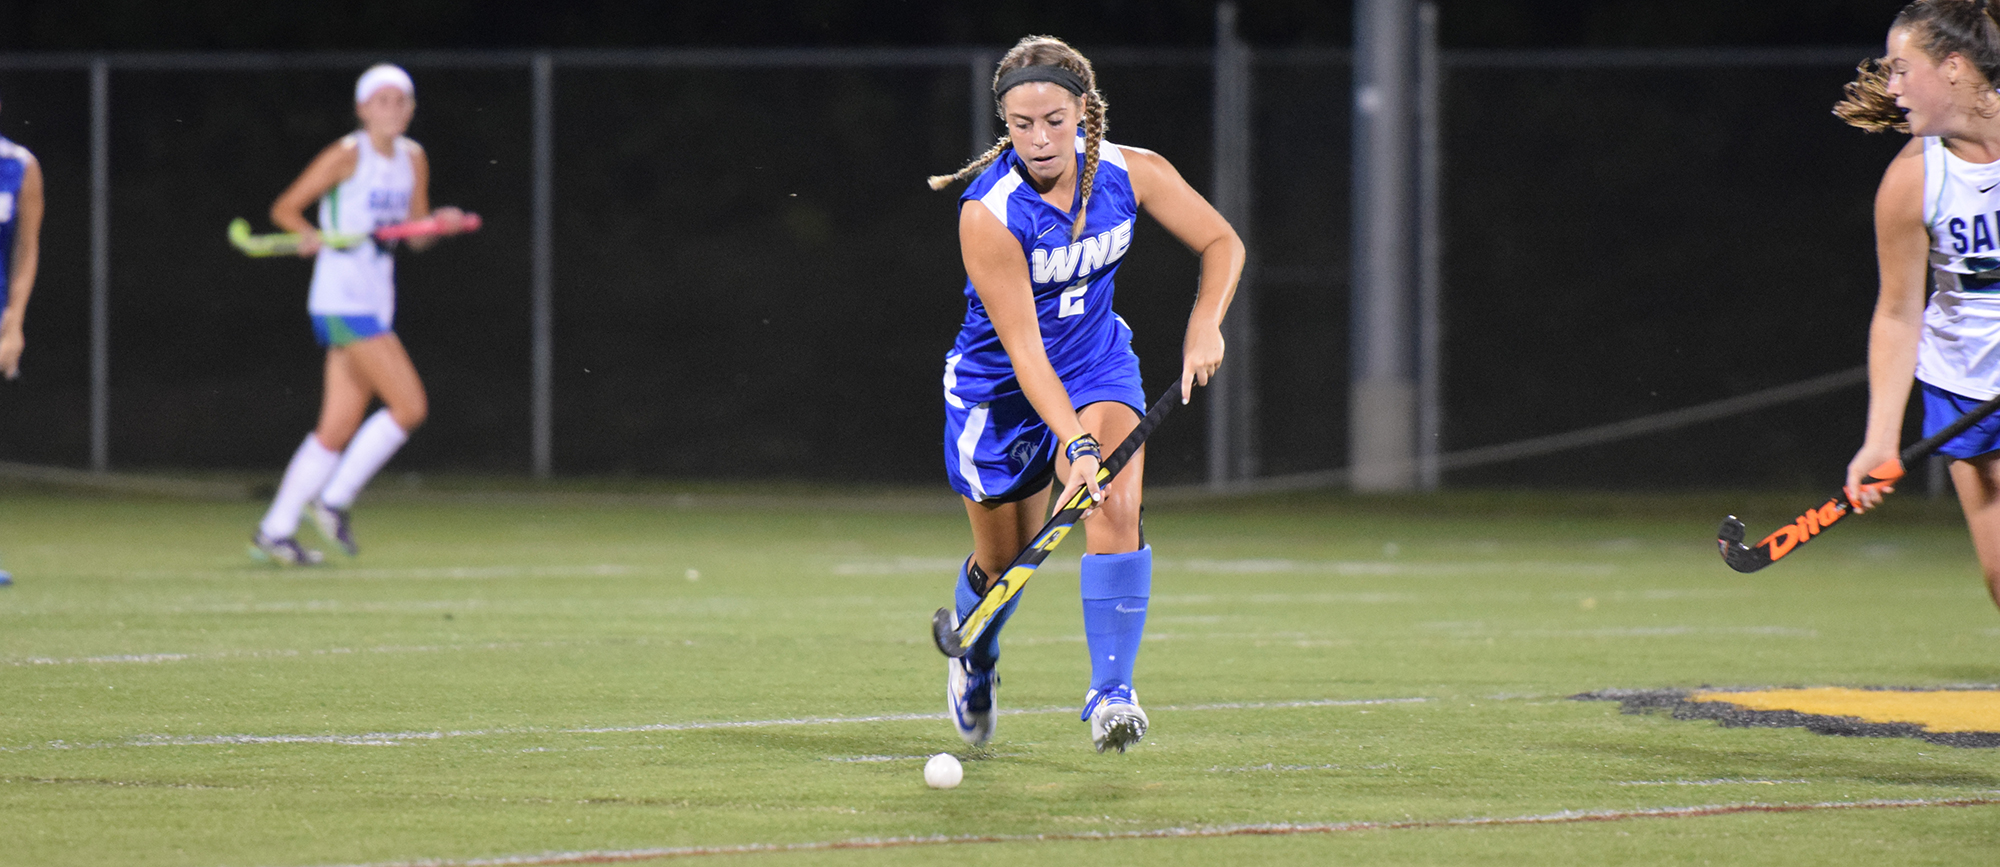 Senior forward Brittany DeLima scored the game-winning goal in overtime as Western New England defeated Roger Williams 3-2 on Tuesday night.